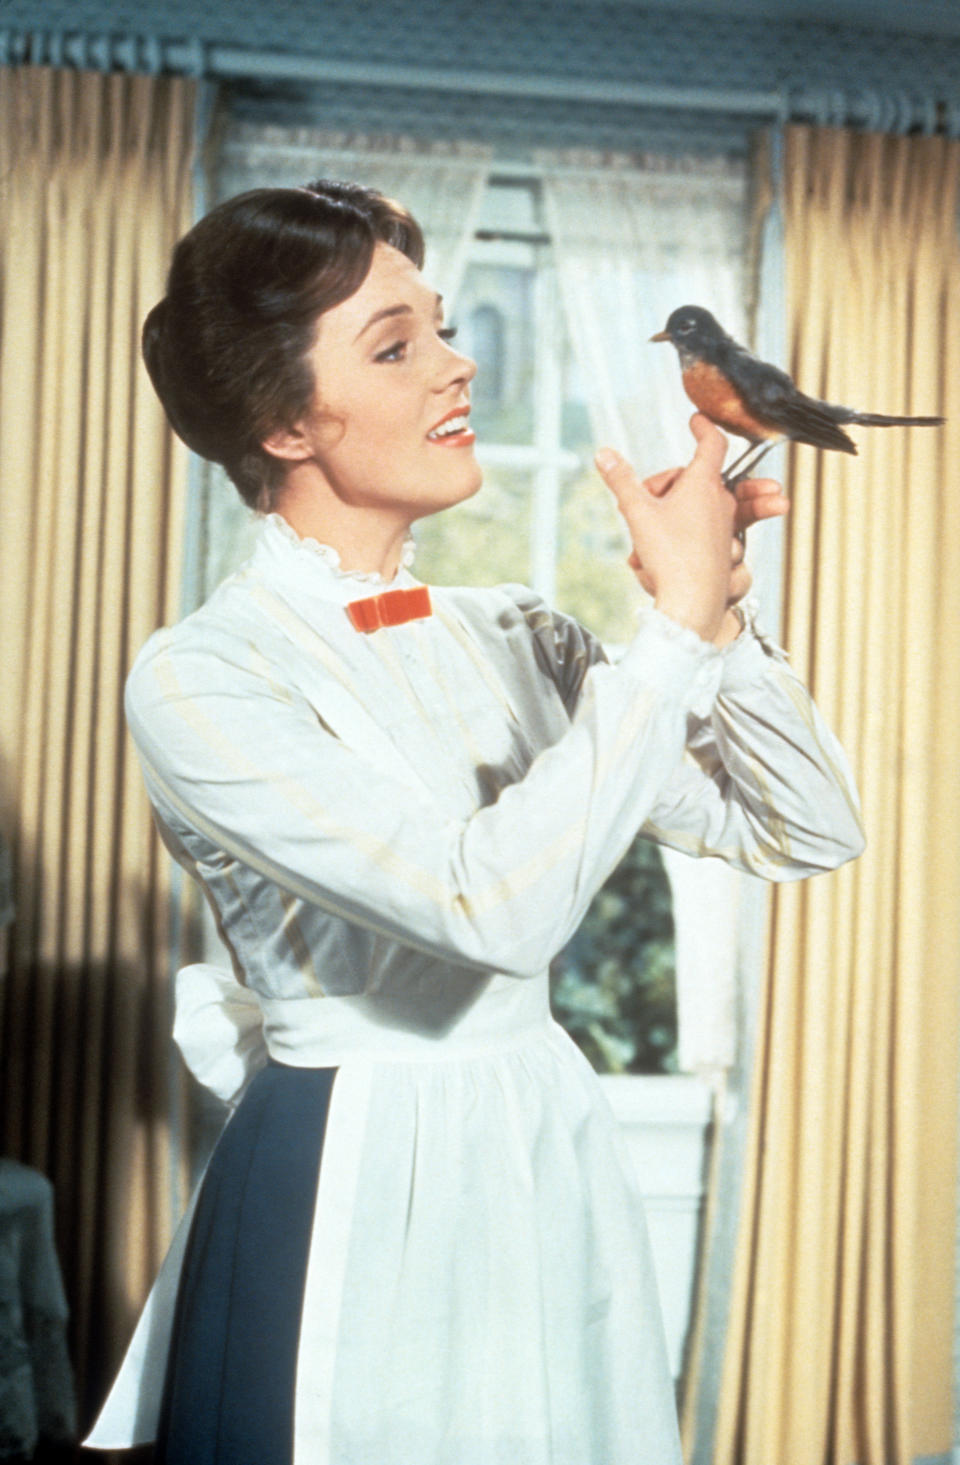 The British actress Julie Andrews, the pseudonym of Julia Elizabeth Wells, in the role of the nanny Mary Poppins, in the film of this name by Robert Stevenson, holds a robin in her hand in a scene of the film. USA, 1964.. (Photo by Mondadori via Getty Images)